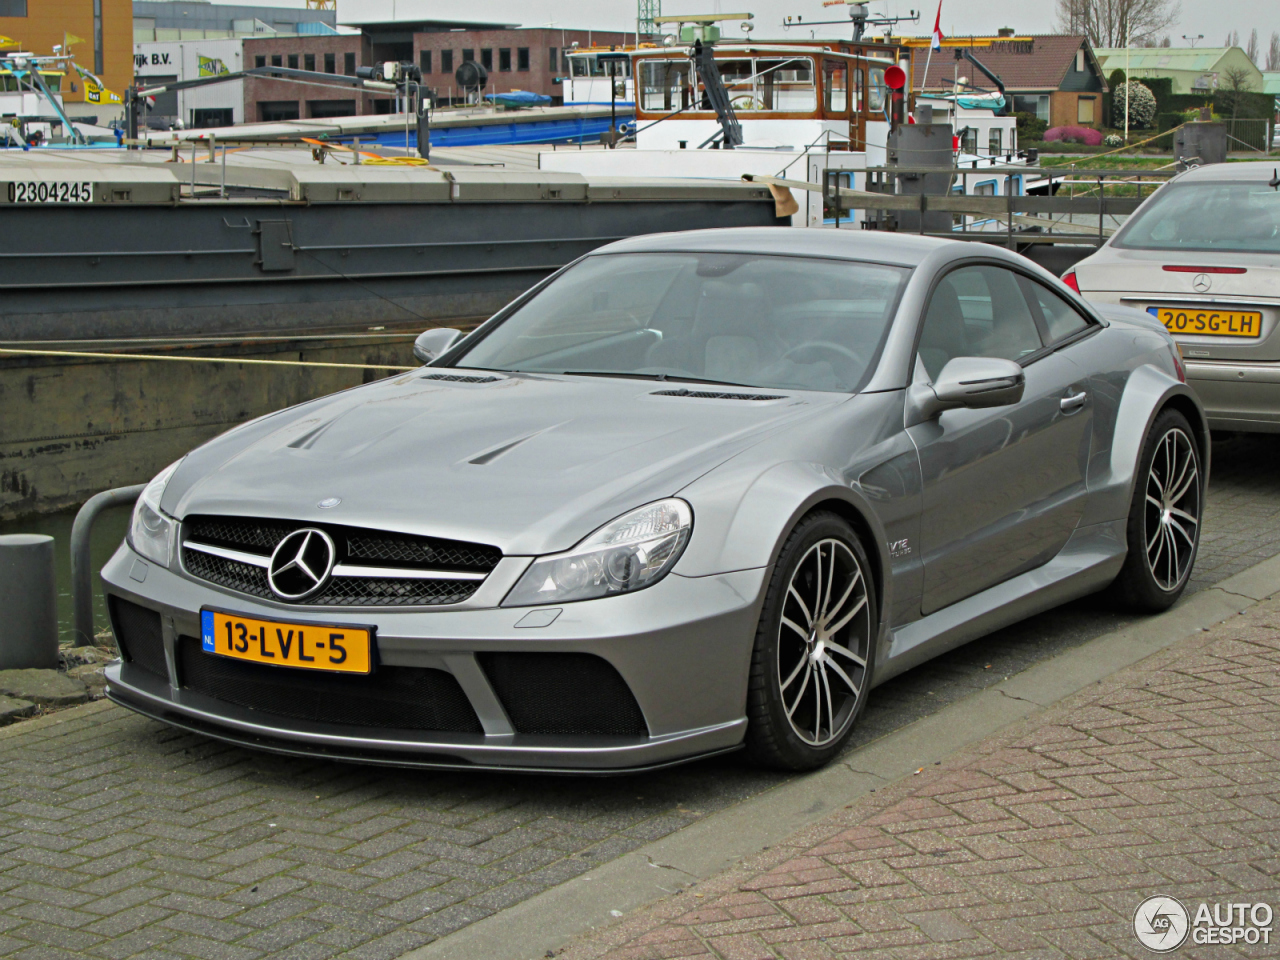 mercedes benz sl 65 amg black series 18 december 2015 autogespot. Black Bedroom Furniture Sets. Home Design Ideas